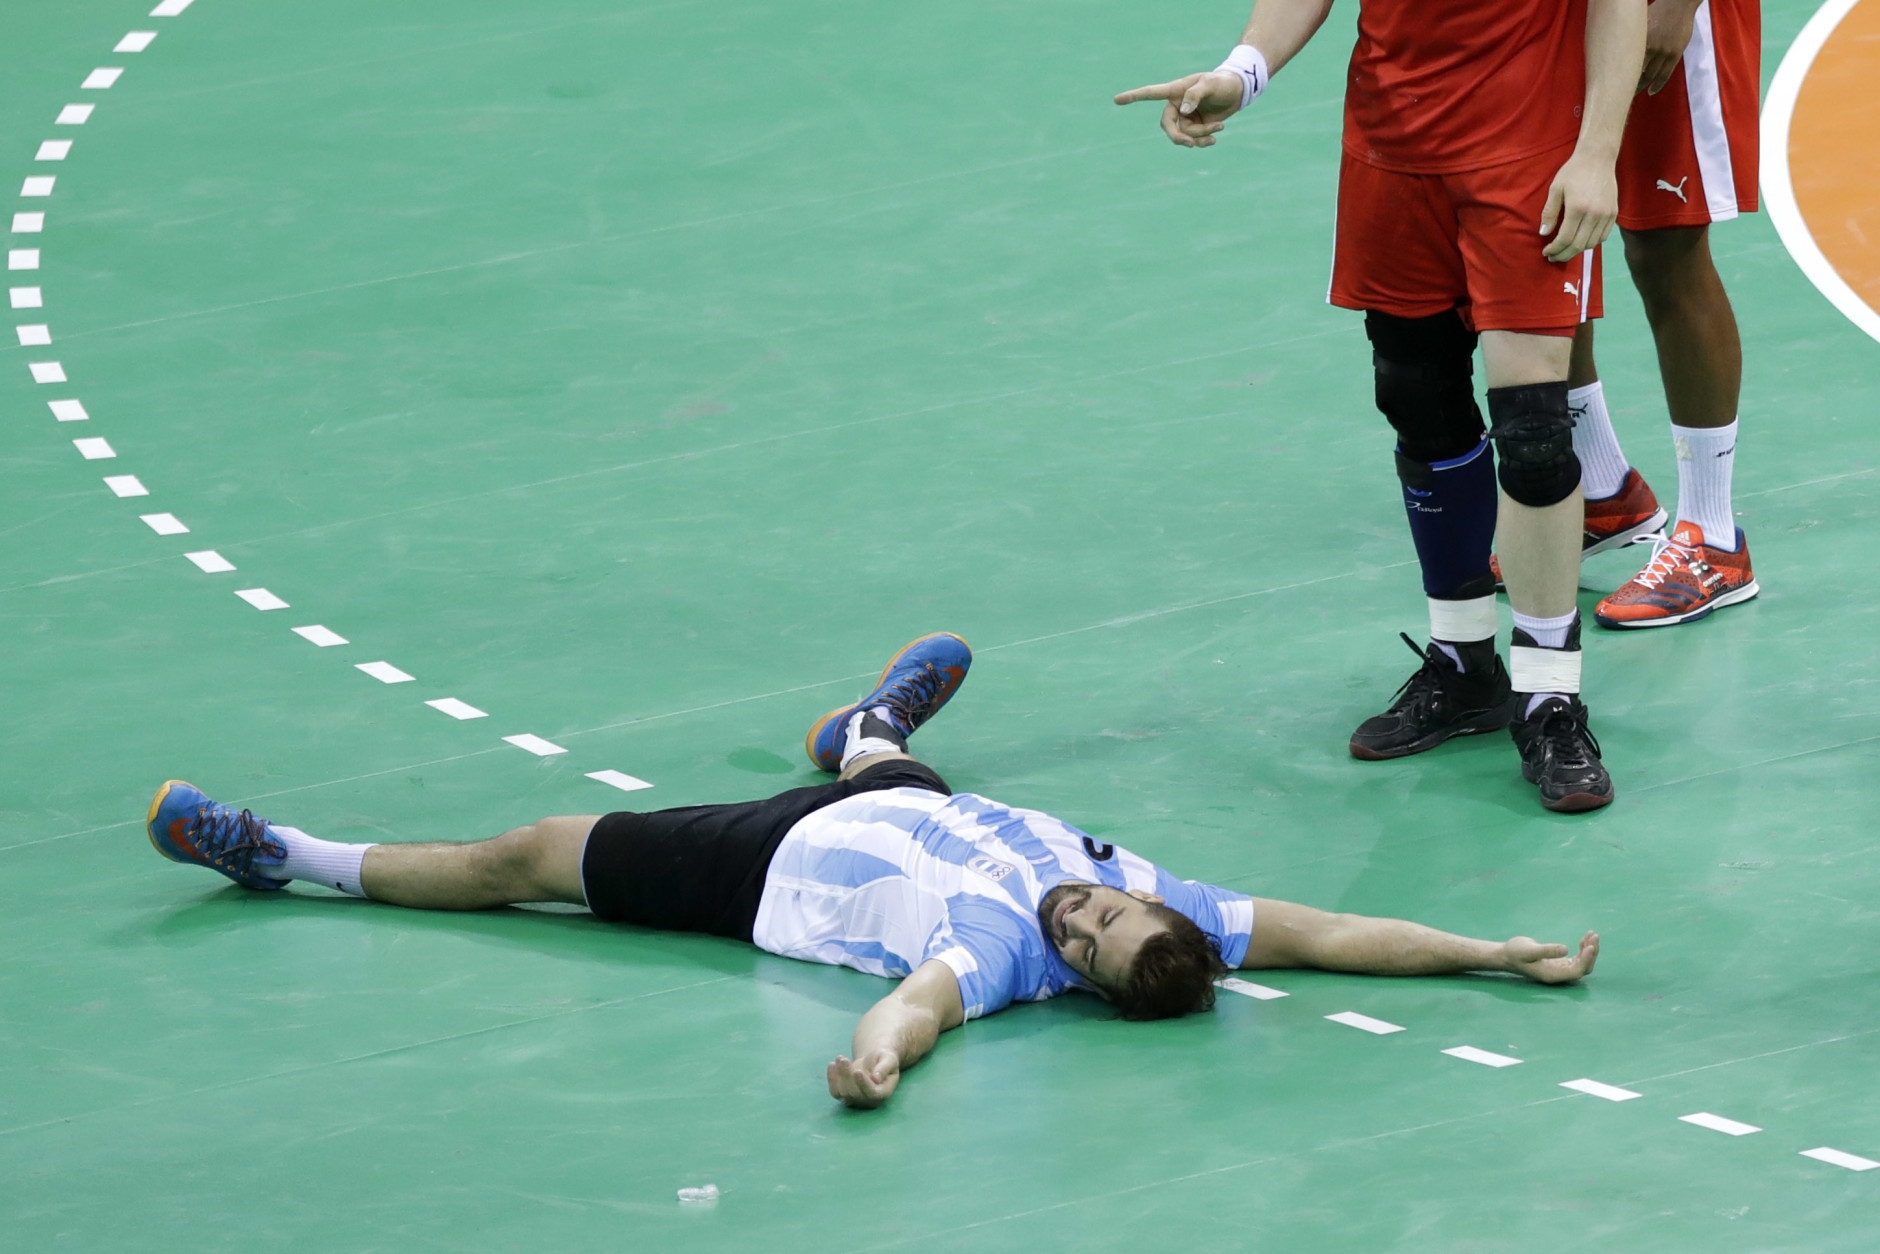 Argentina's Federico Pizarro lies on the ground after missing to score a penalty besides Denmark's Rene Toft Hansen during the men's preliminary handball match between Denmark and Argentina at the 2016 Summer Olympics in Rio de Janeiro, Brazil, Sunday, Aug. 7, 2016. (AP Photo/Matthias Schrader)